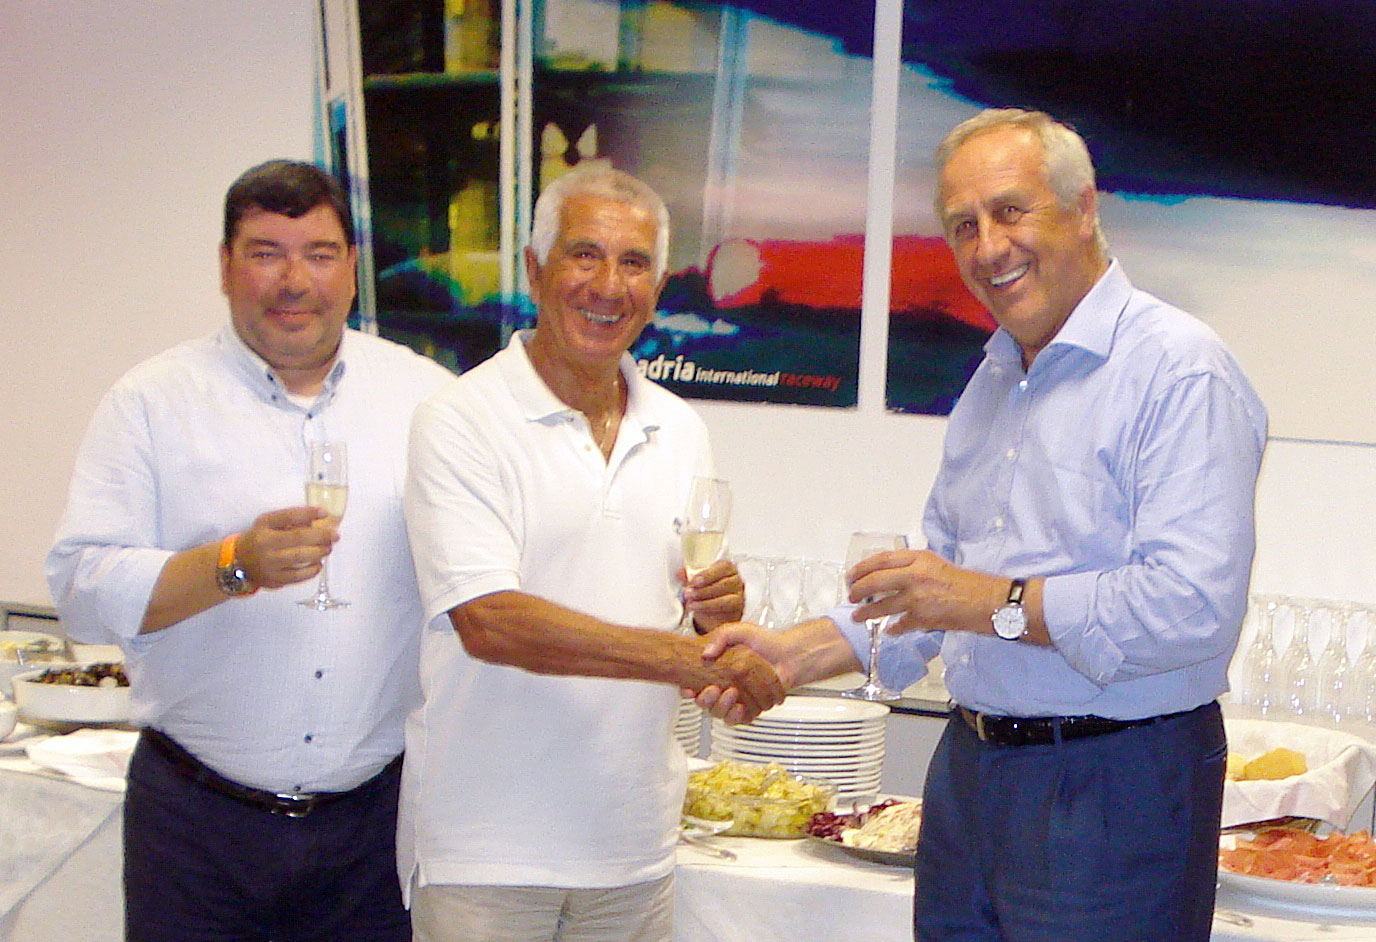 UEM President Vincenzo Mazzi and UEM Vice-President Luigi Favarato with the owner of the Adria track Giuliano Toè.